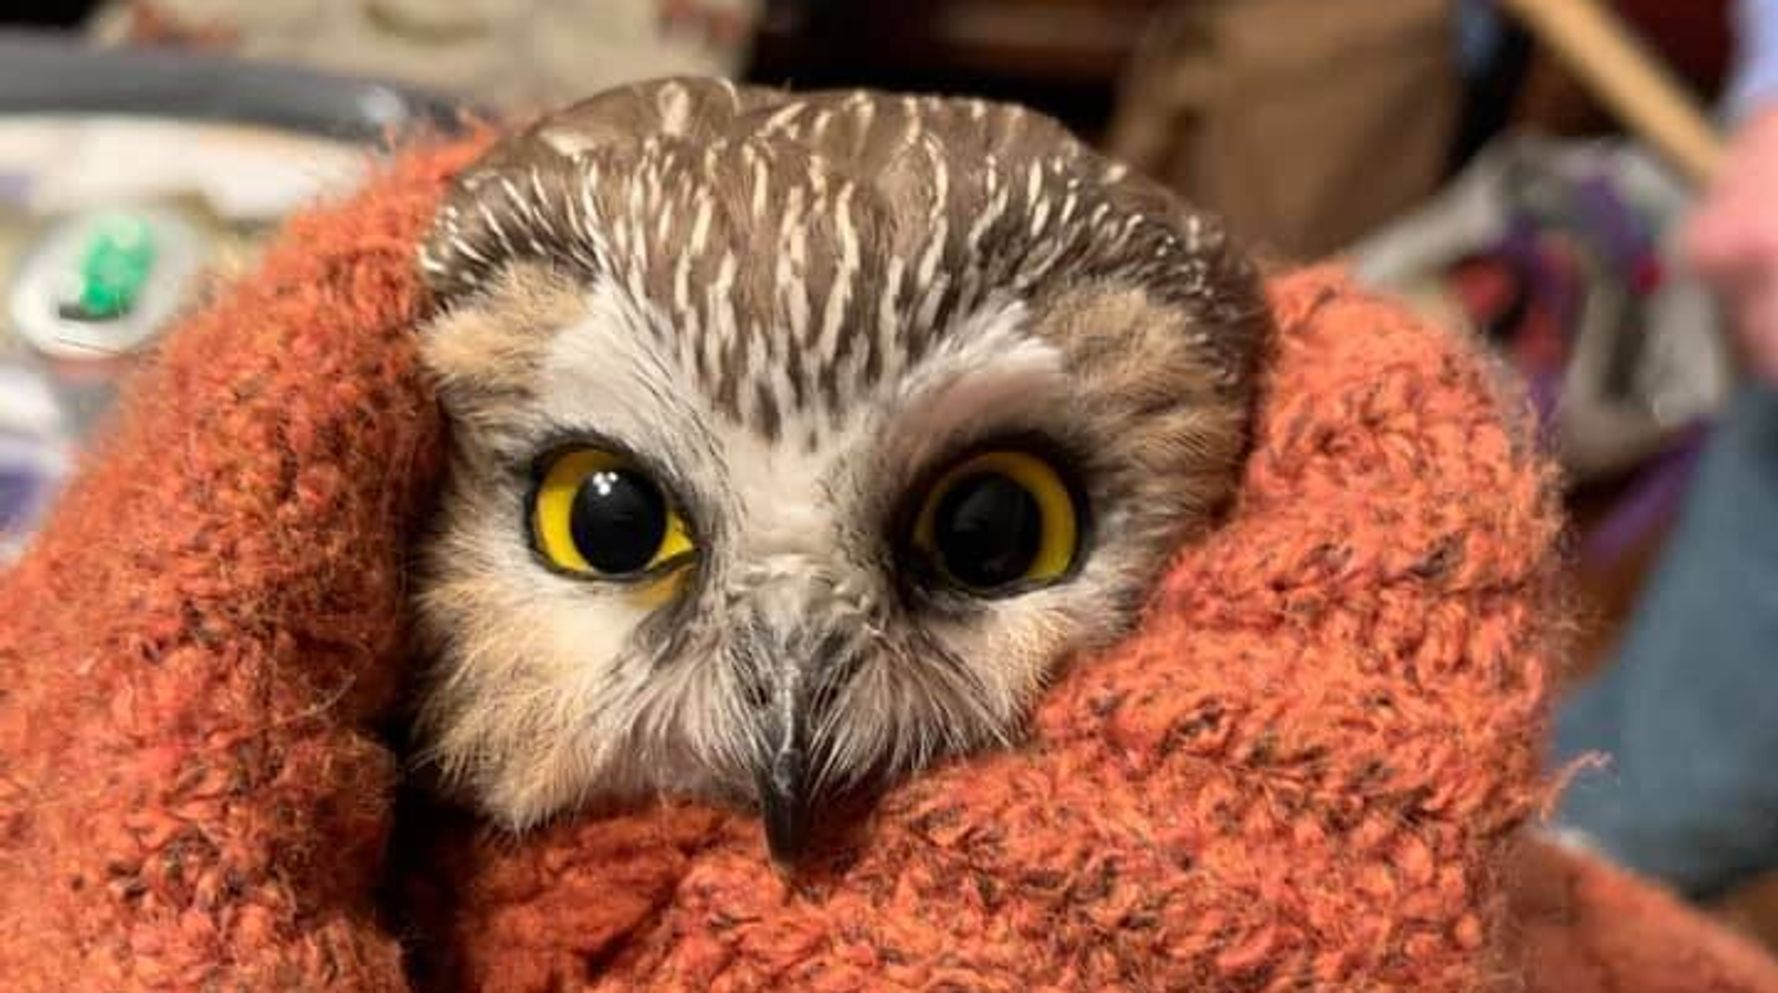 Tiny Owl Found In Rockefeller Center Christmas Tree After Long Journey To NYC